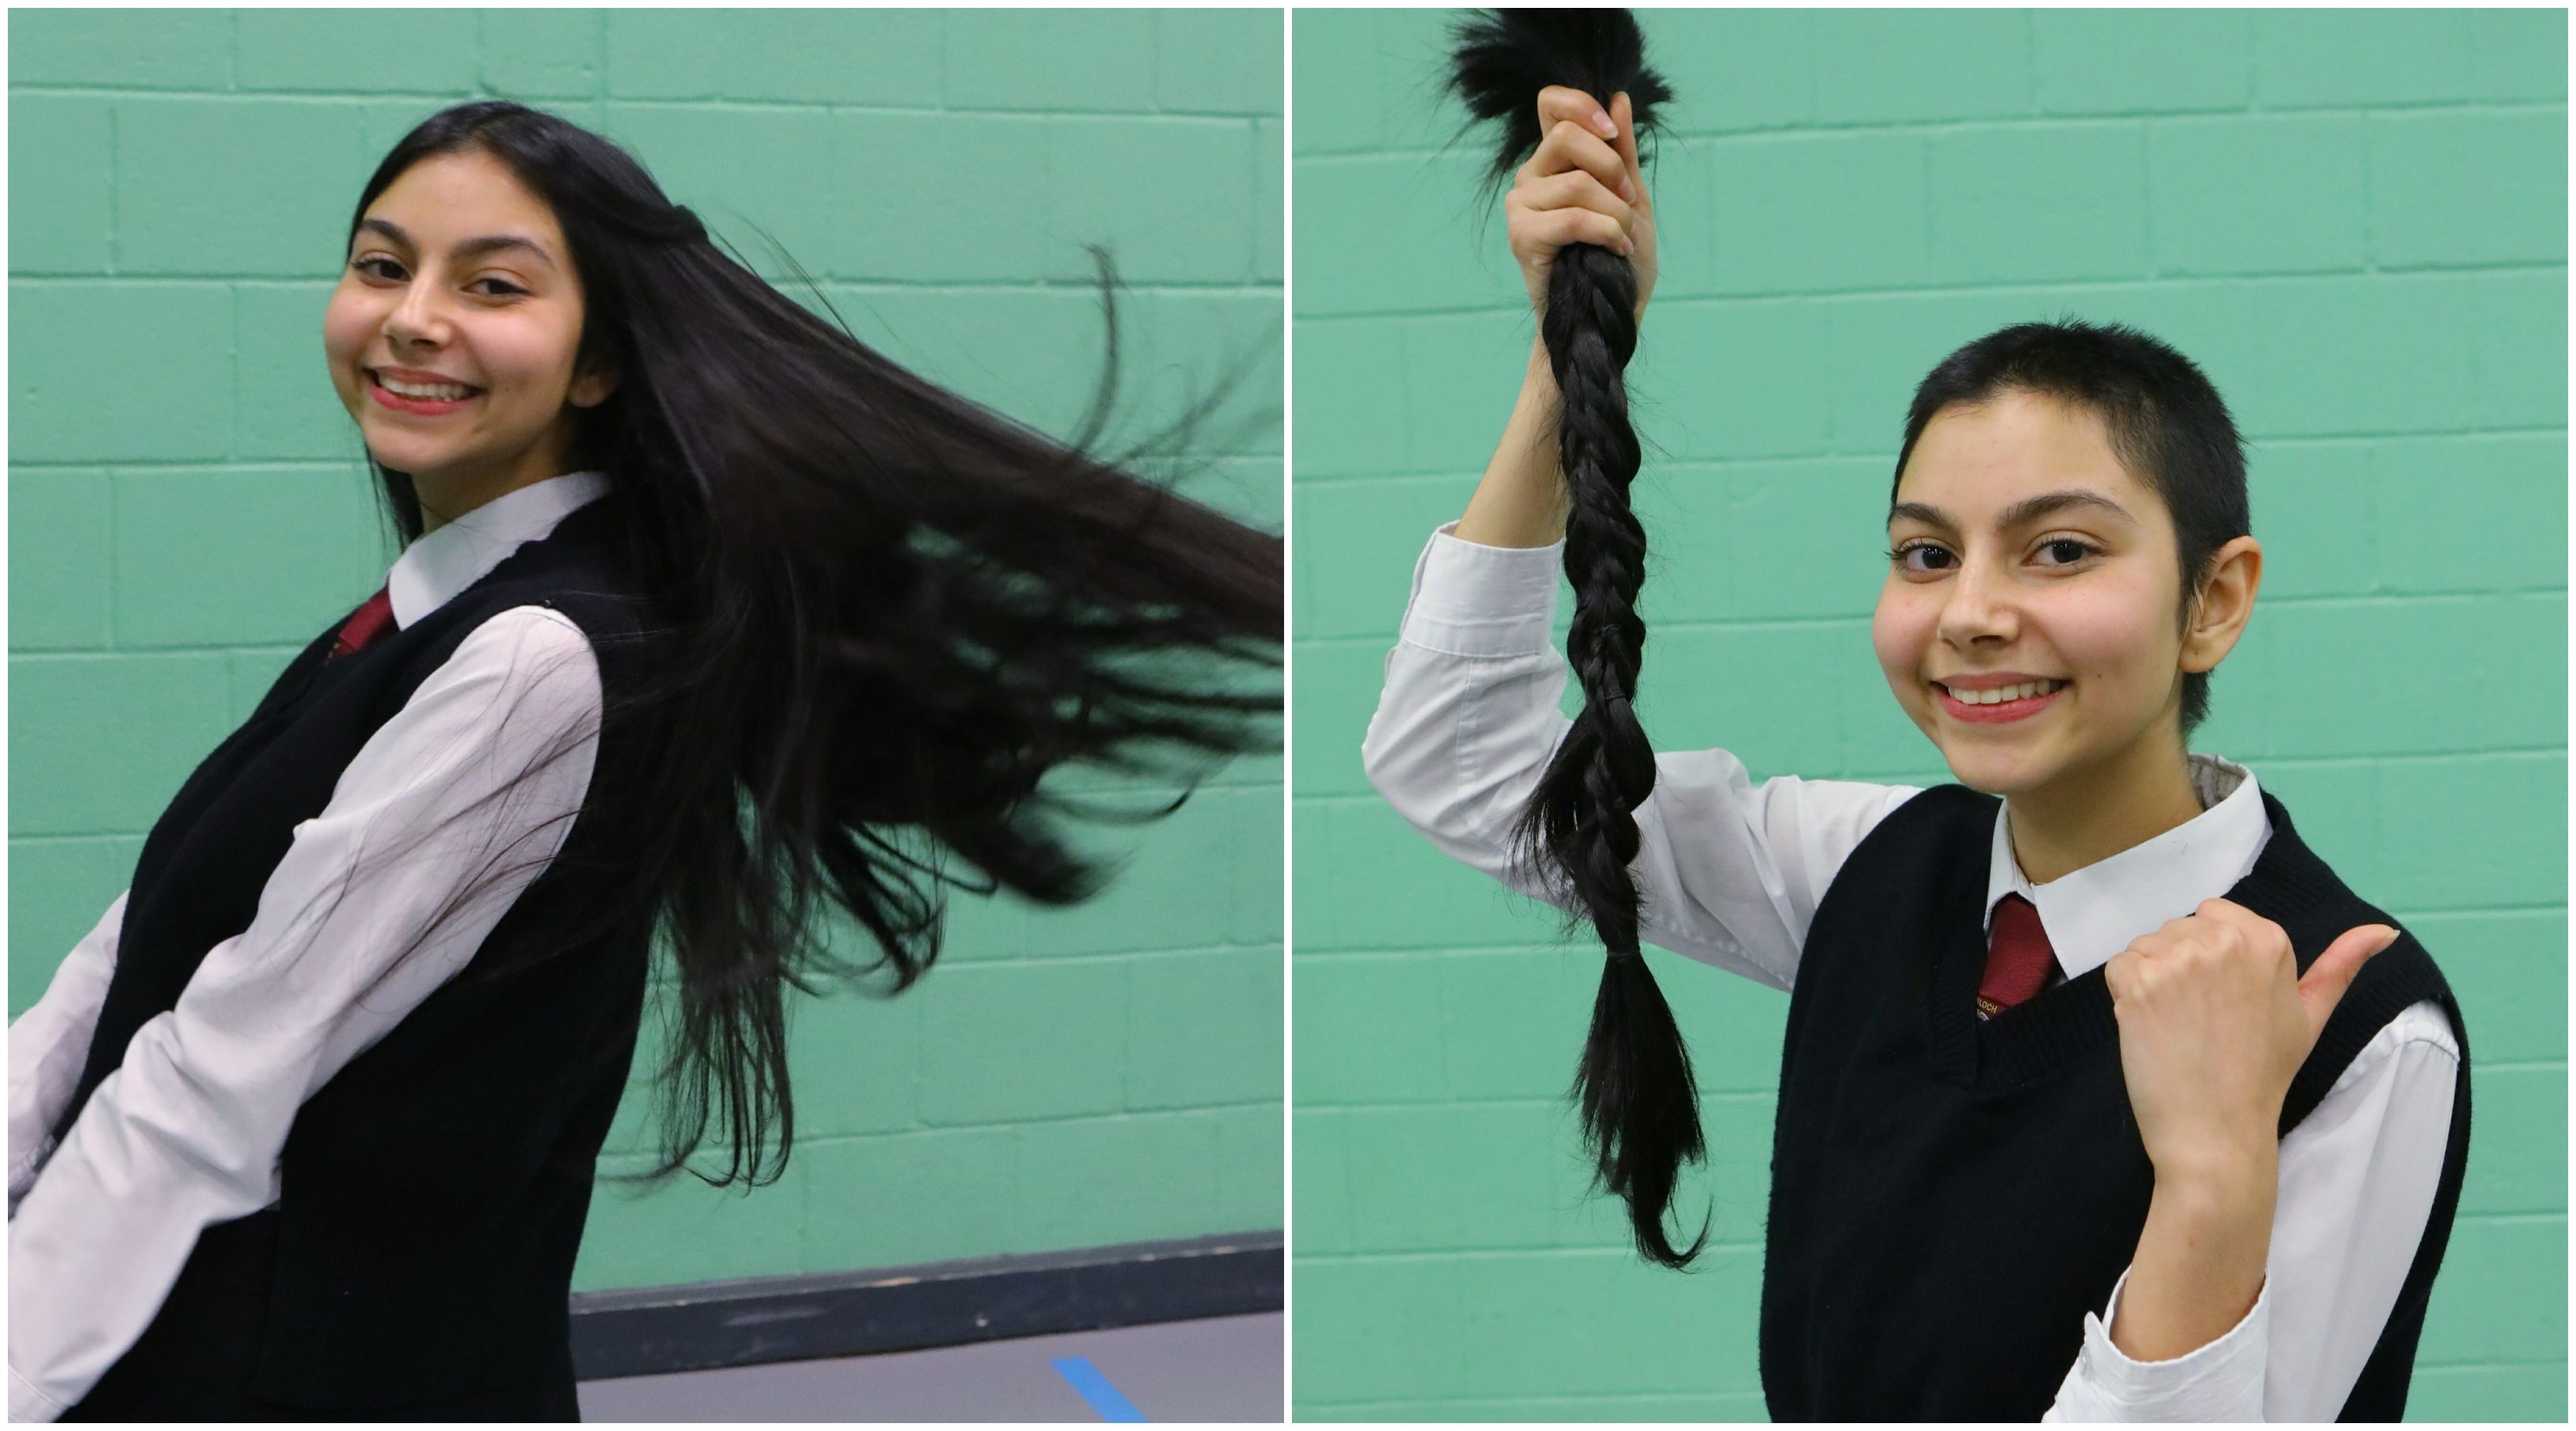 Giovanna Mondal is pictured, left, before having her hair cut off and, right, after the snip.